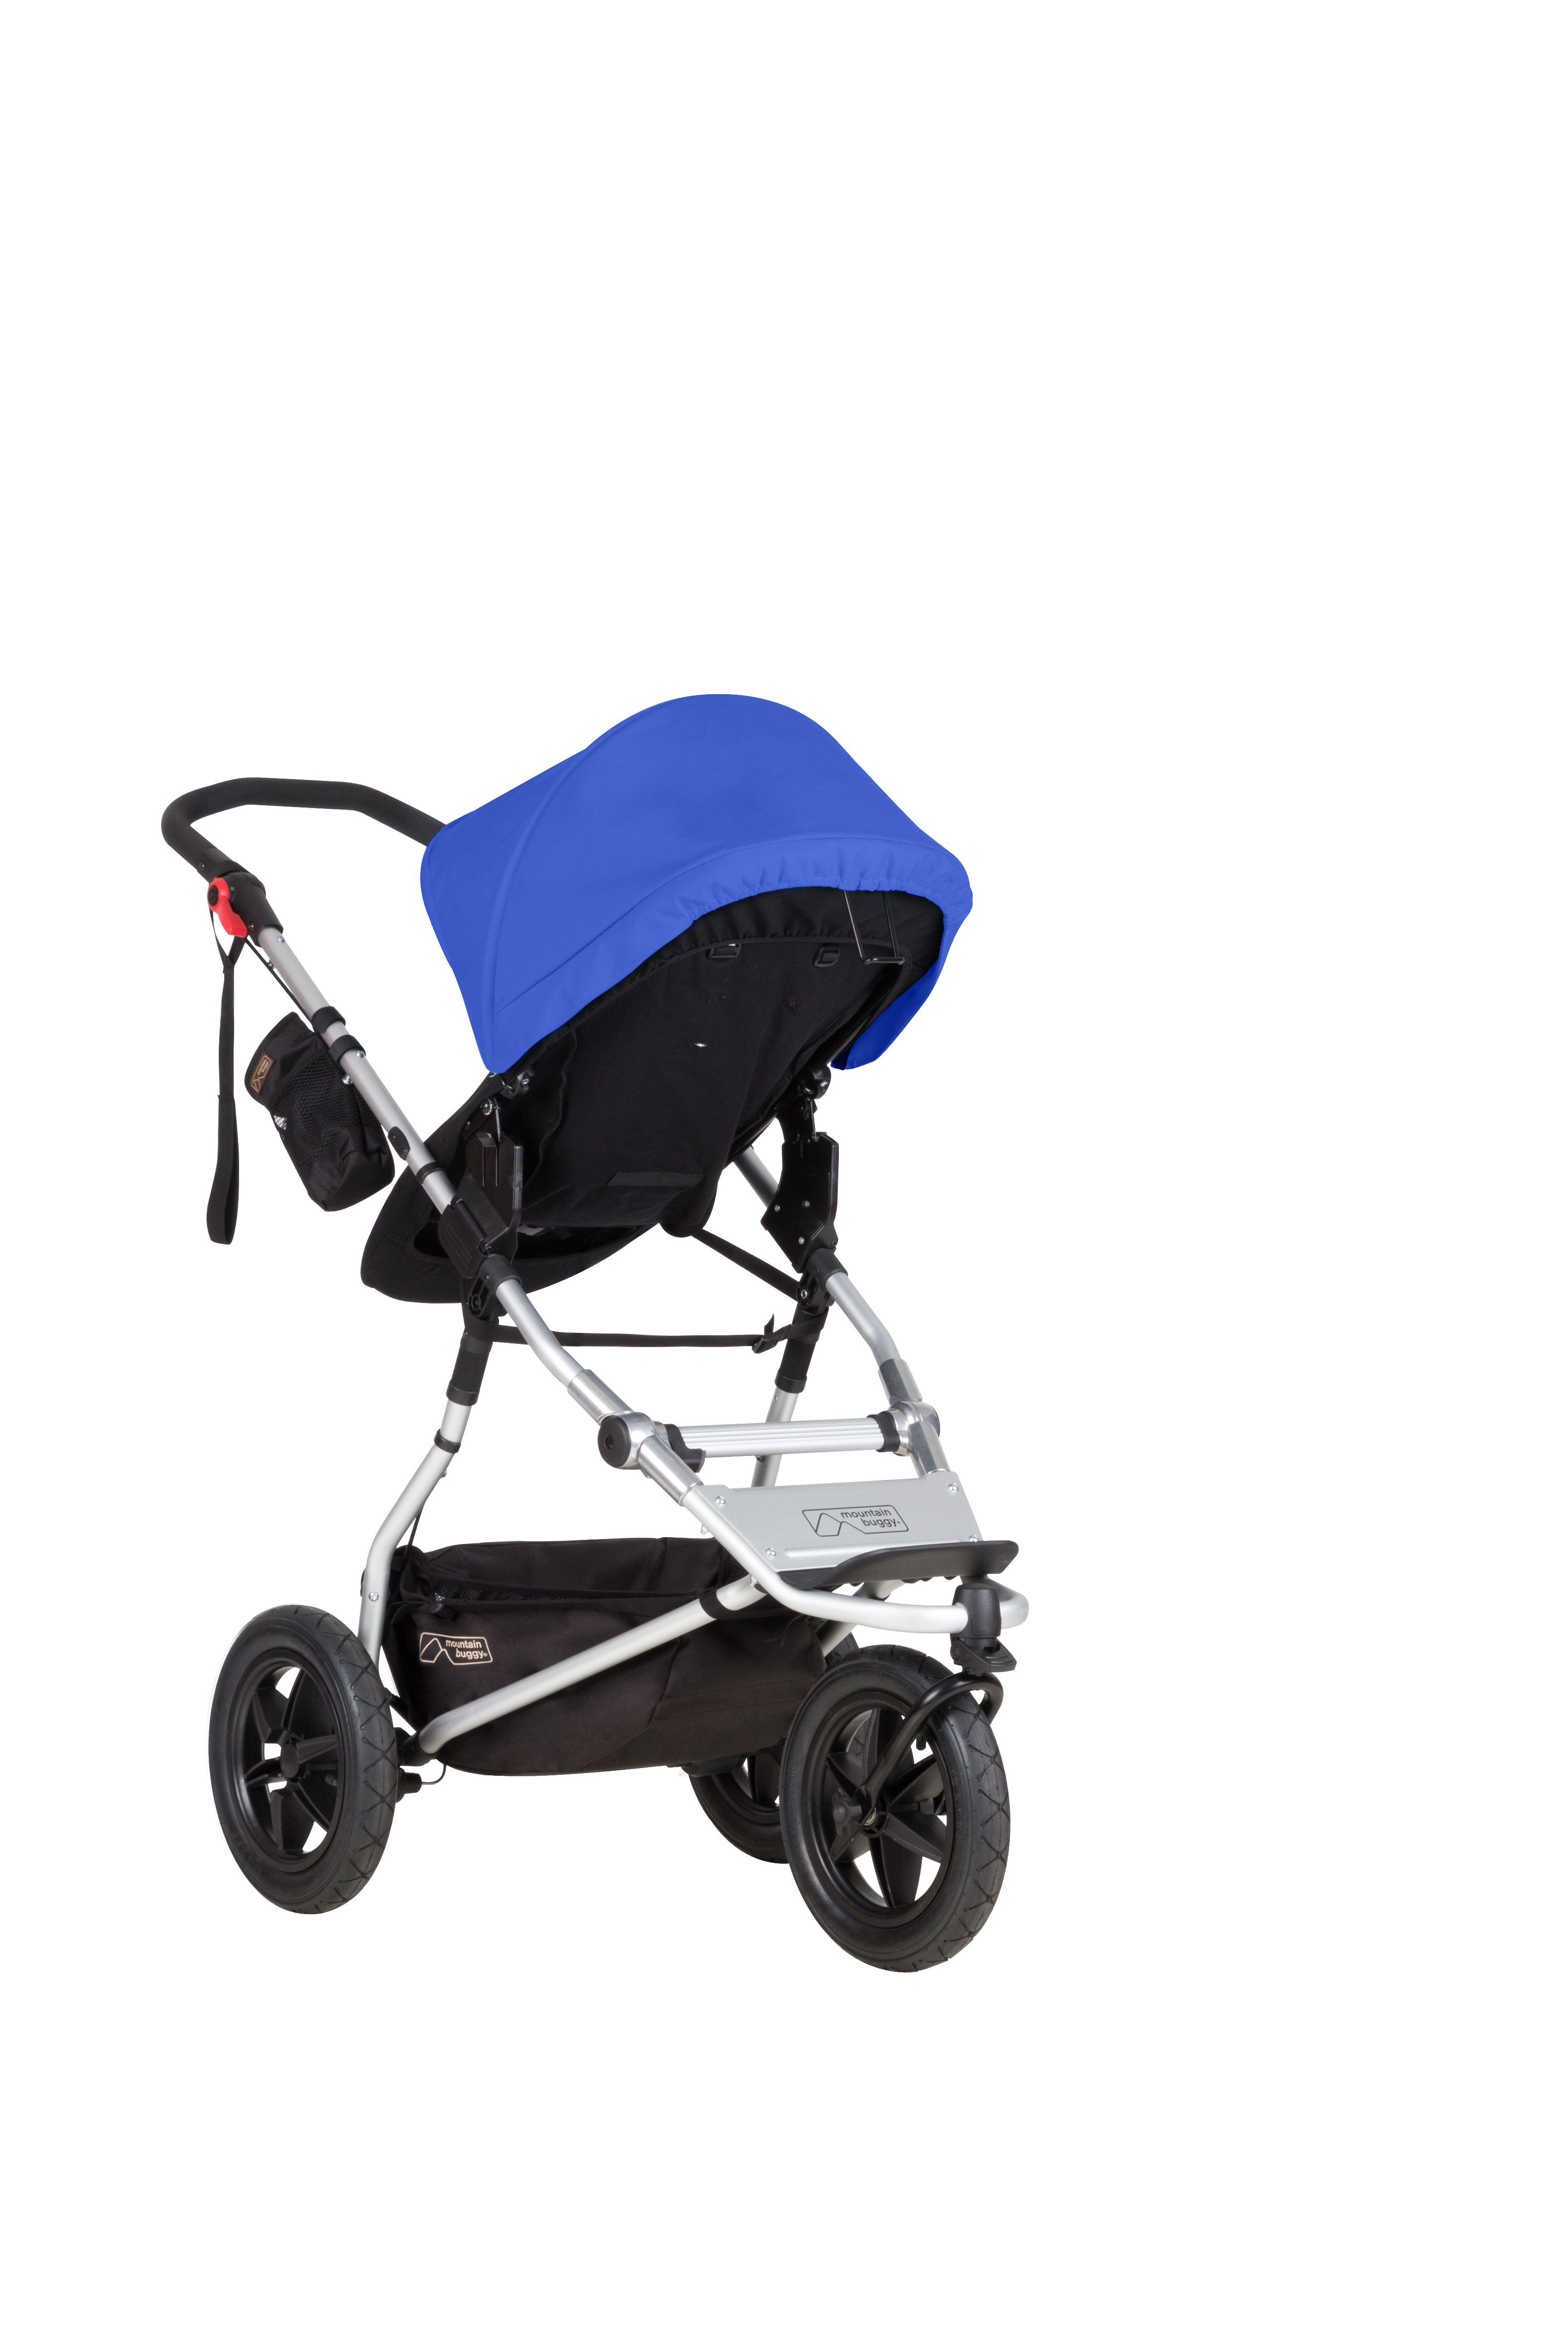 Mountain Buggy Zum Joggen Mountain Buggy Urban Jungle Review Mountain Buggy Urban